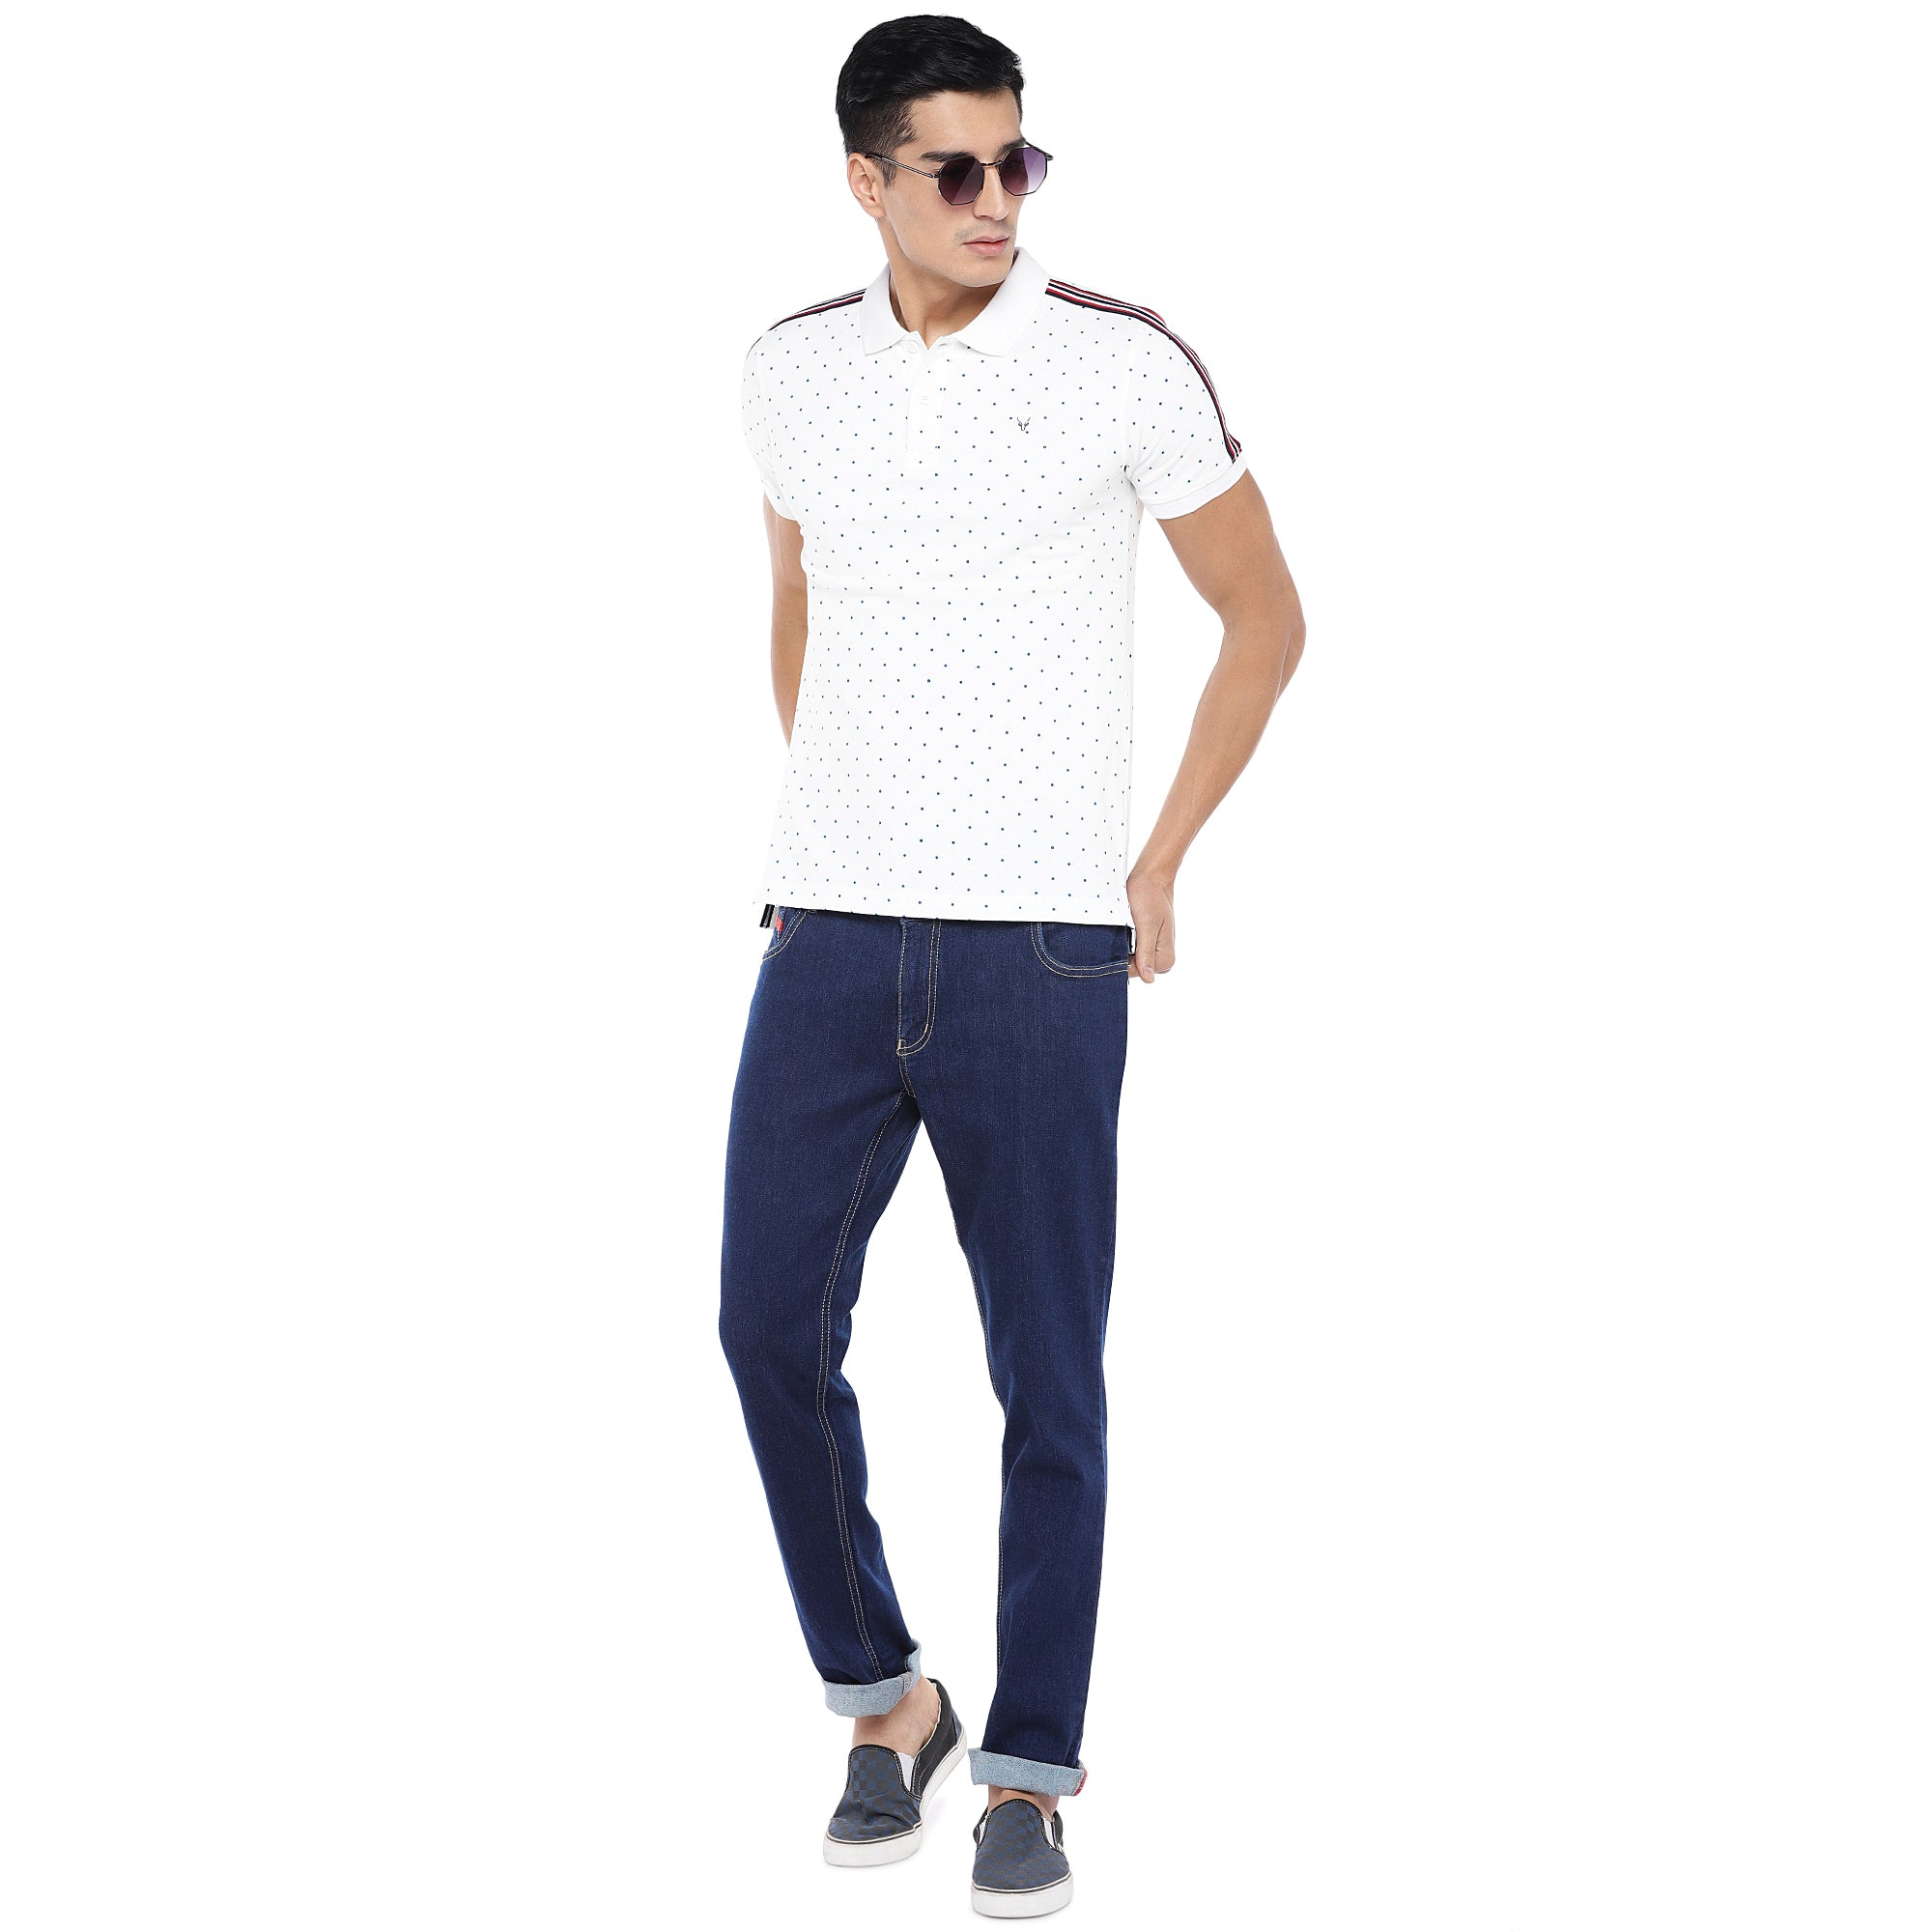 White Printed Polo T-Shirt-4